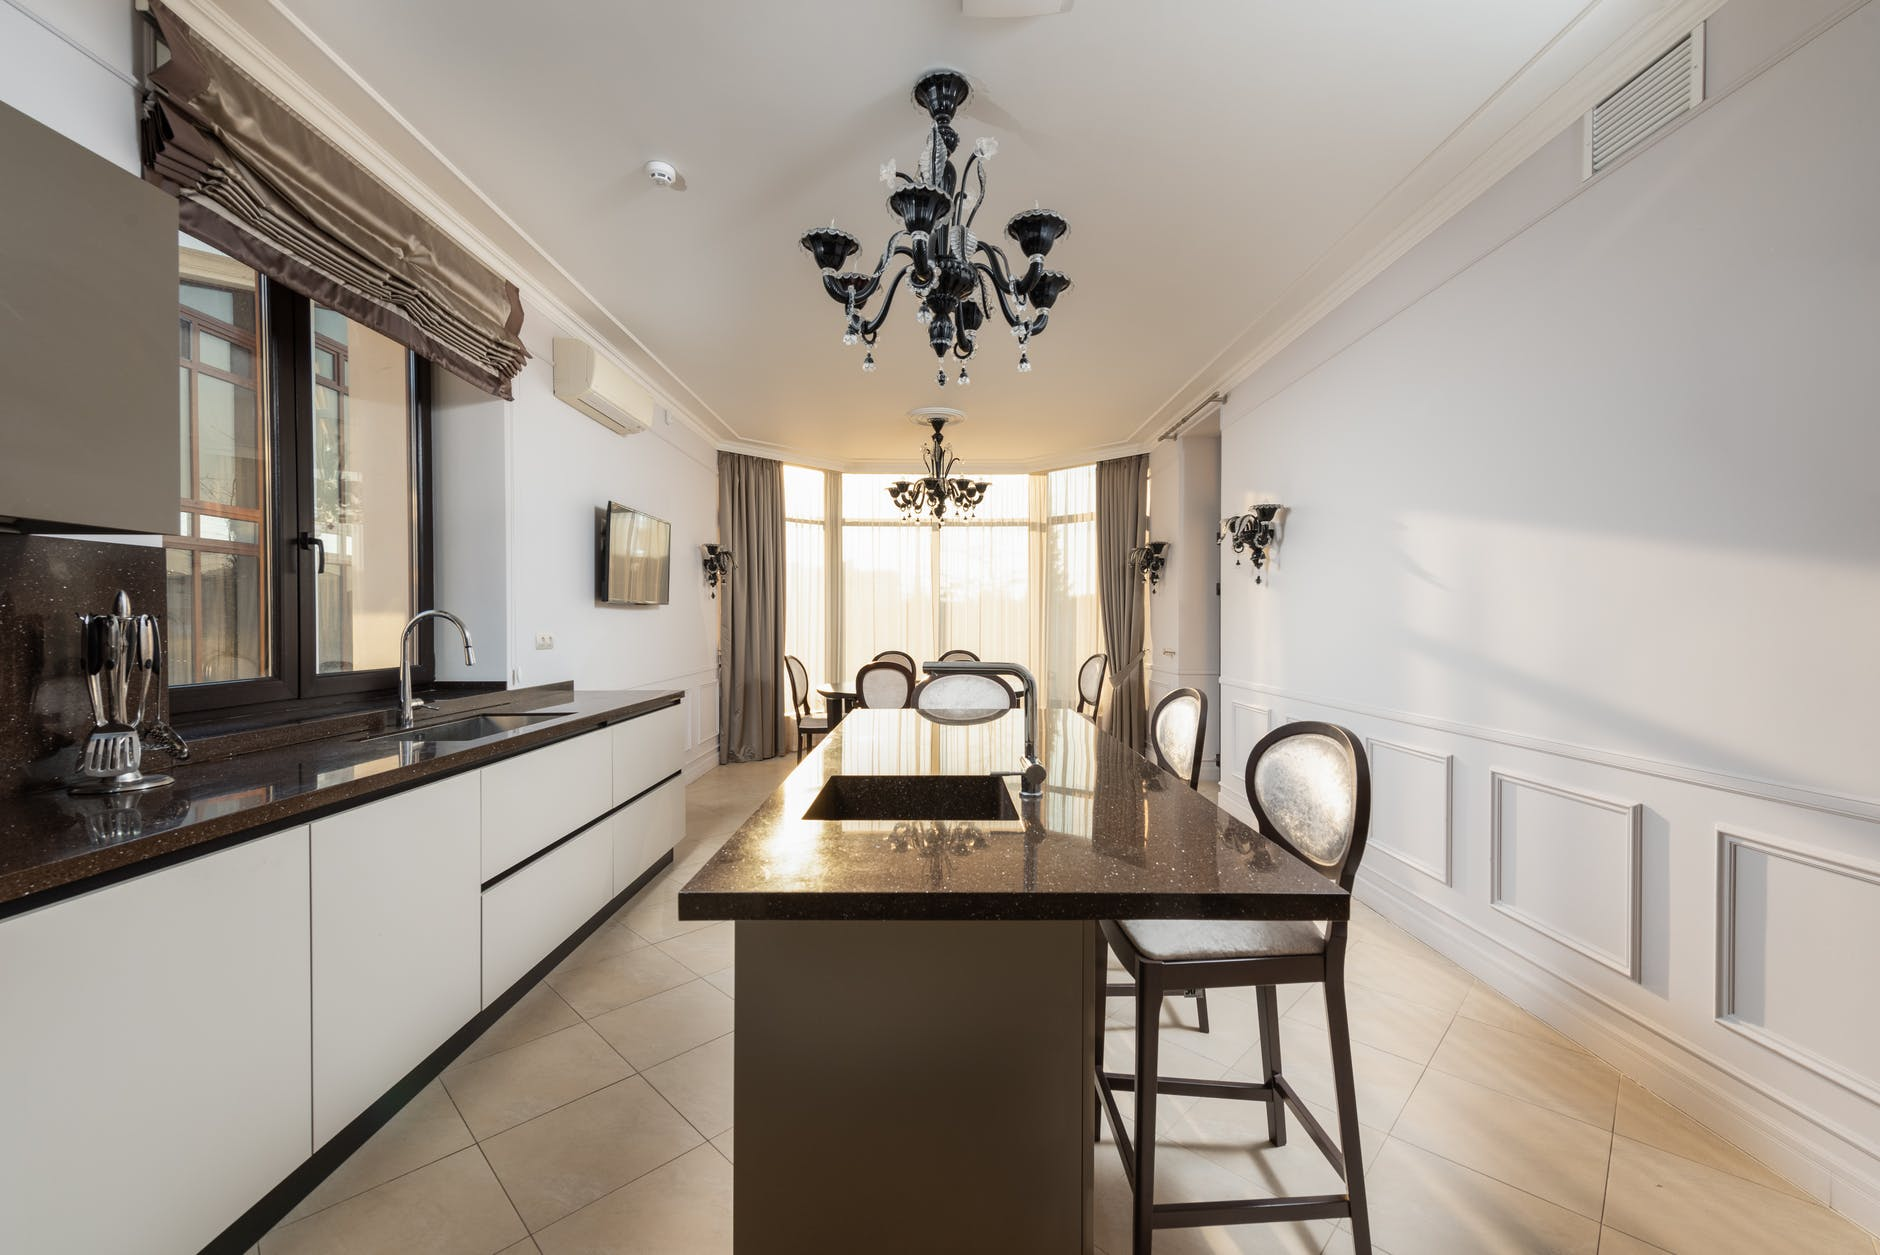 images of kitchen flooring